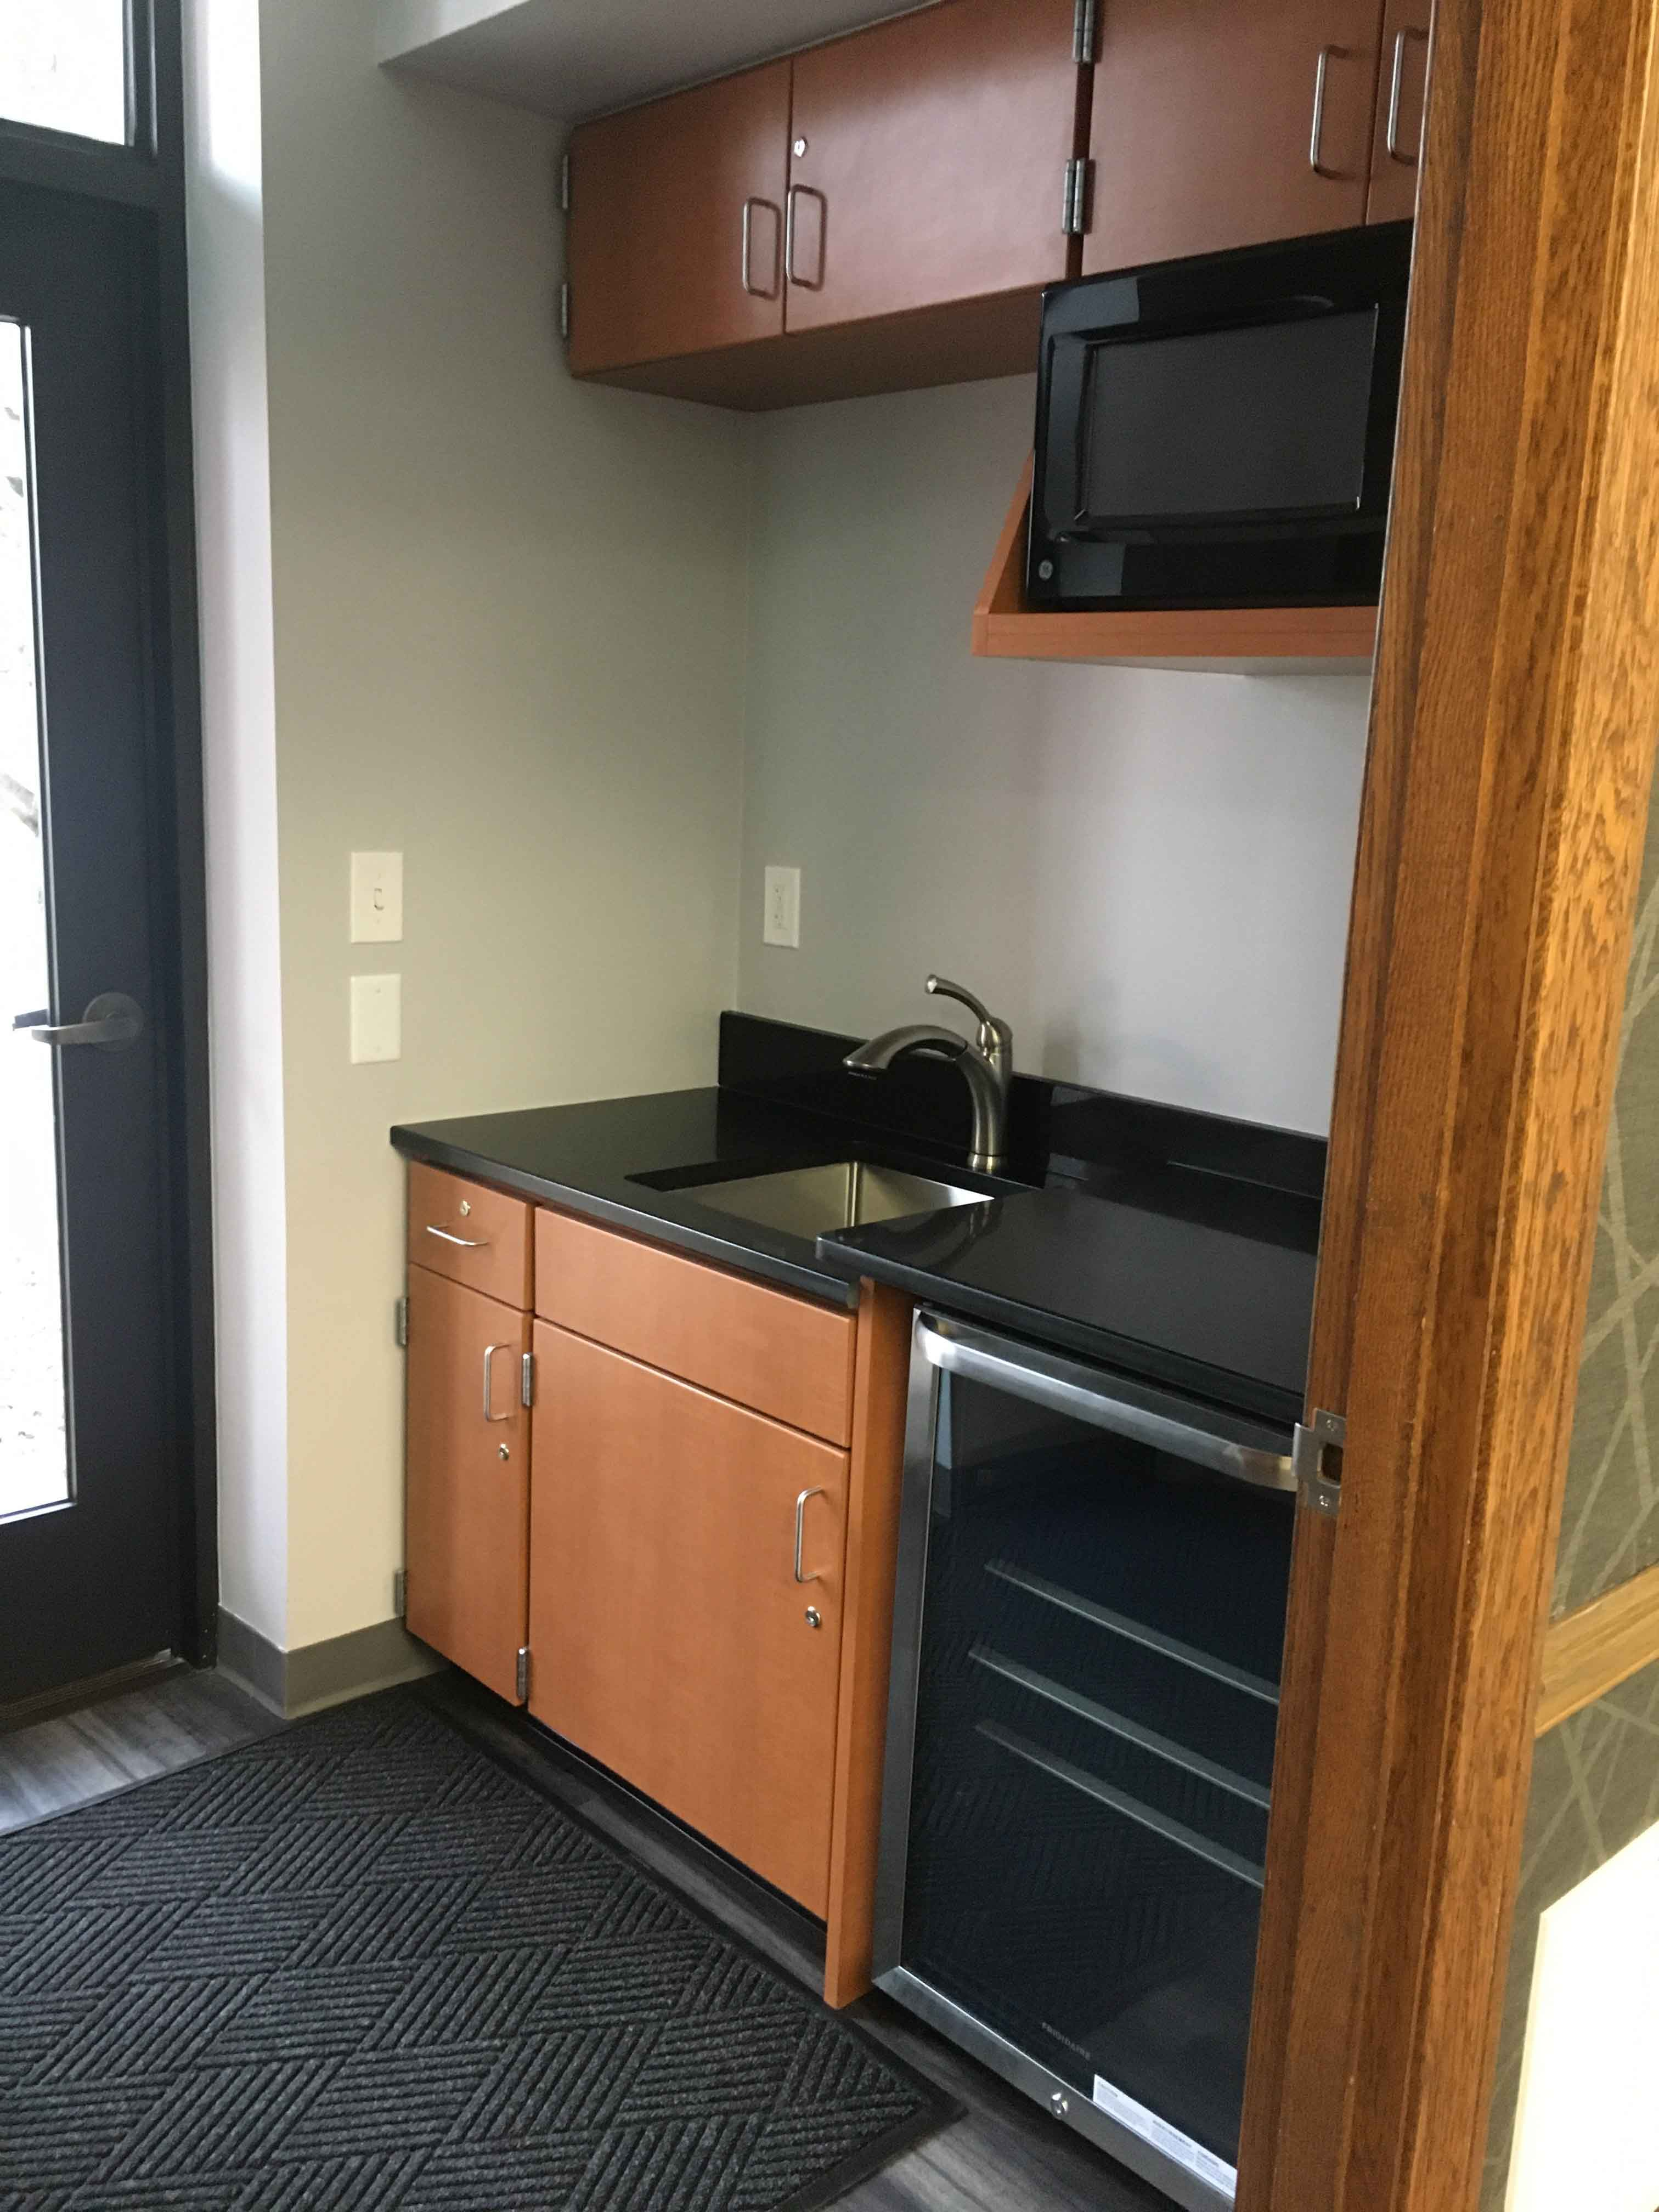 Conference Room Kitchenette